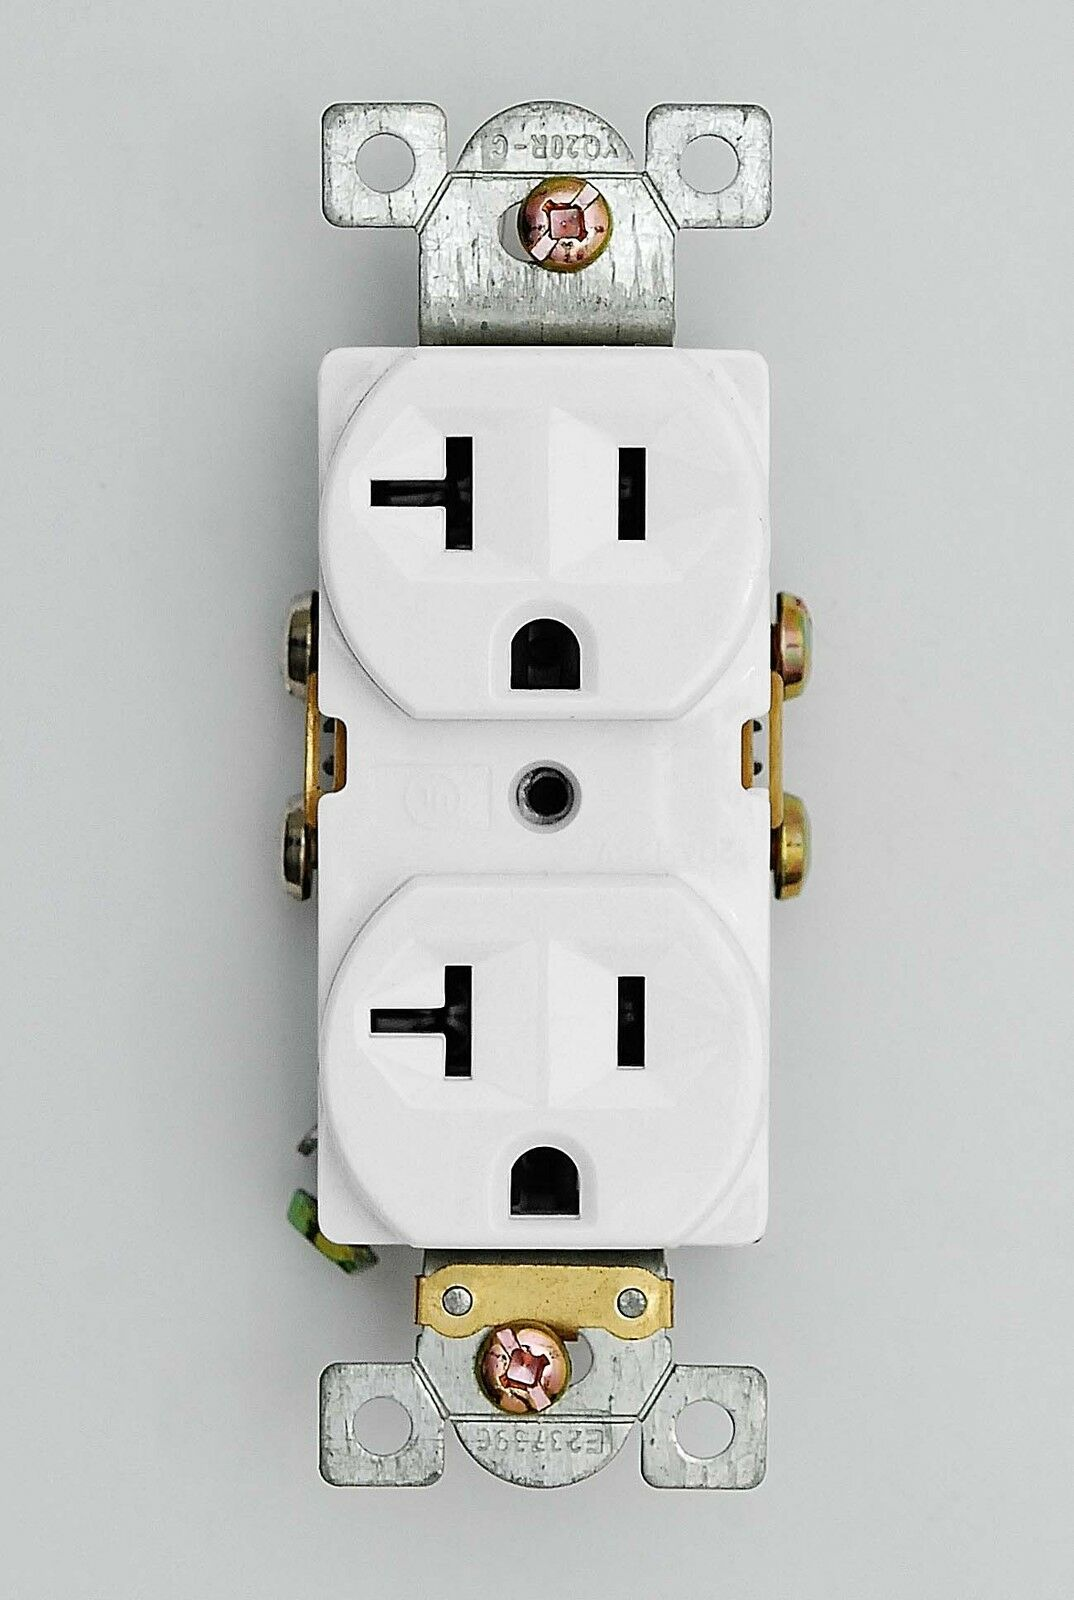 10 Pack 20 Amp Receptacle Duplex Commercial Grade Heavy Duty 125v Electrical 3 Wire Amps 250v Nema 6 20r Yga022f Ebay 1 Of 2free Shipping